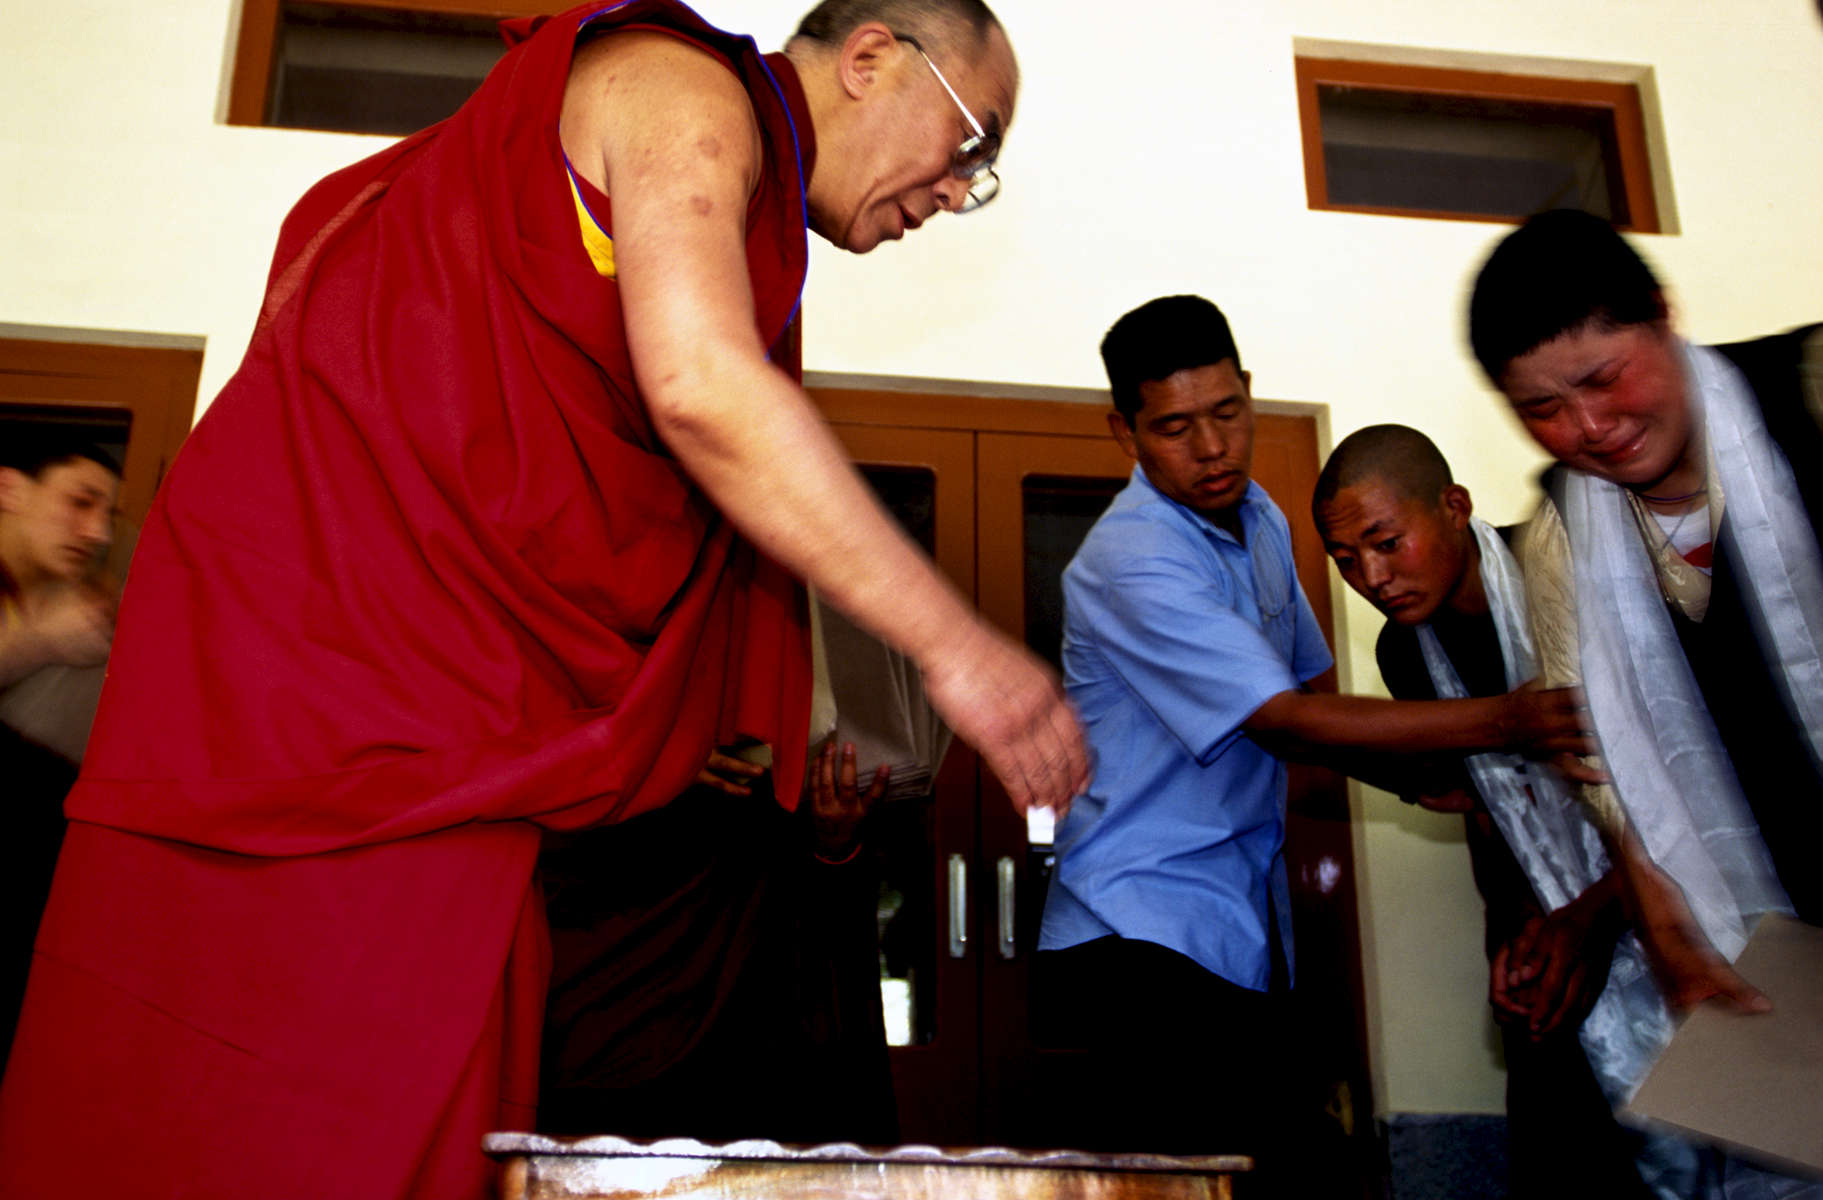 Tibetan refugees meeting their Holiness, the Dalai Lama for the first time in Mecleod Ganj, India. 1998